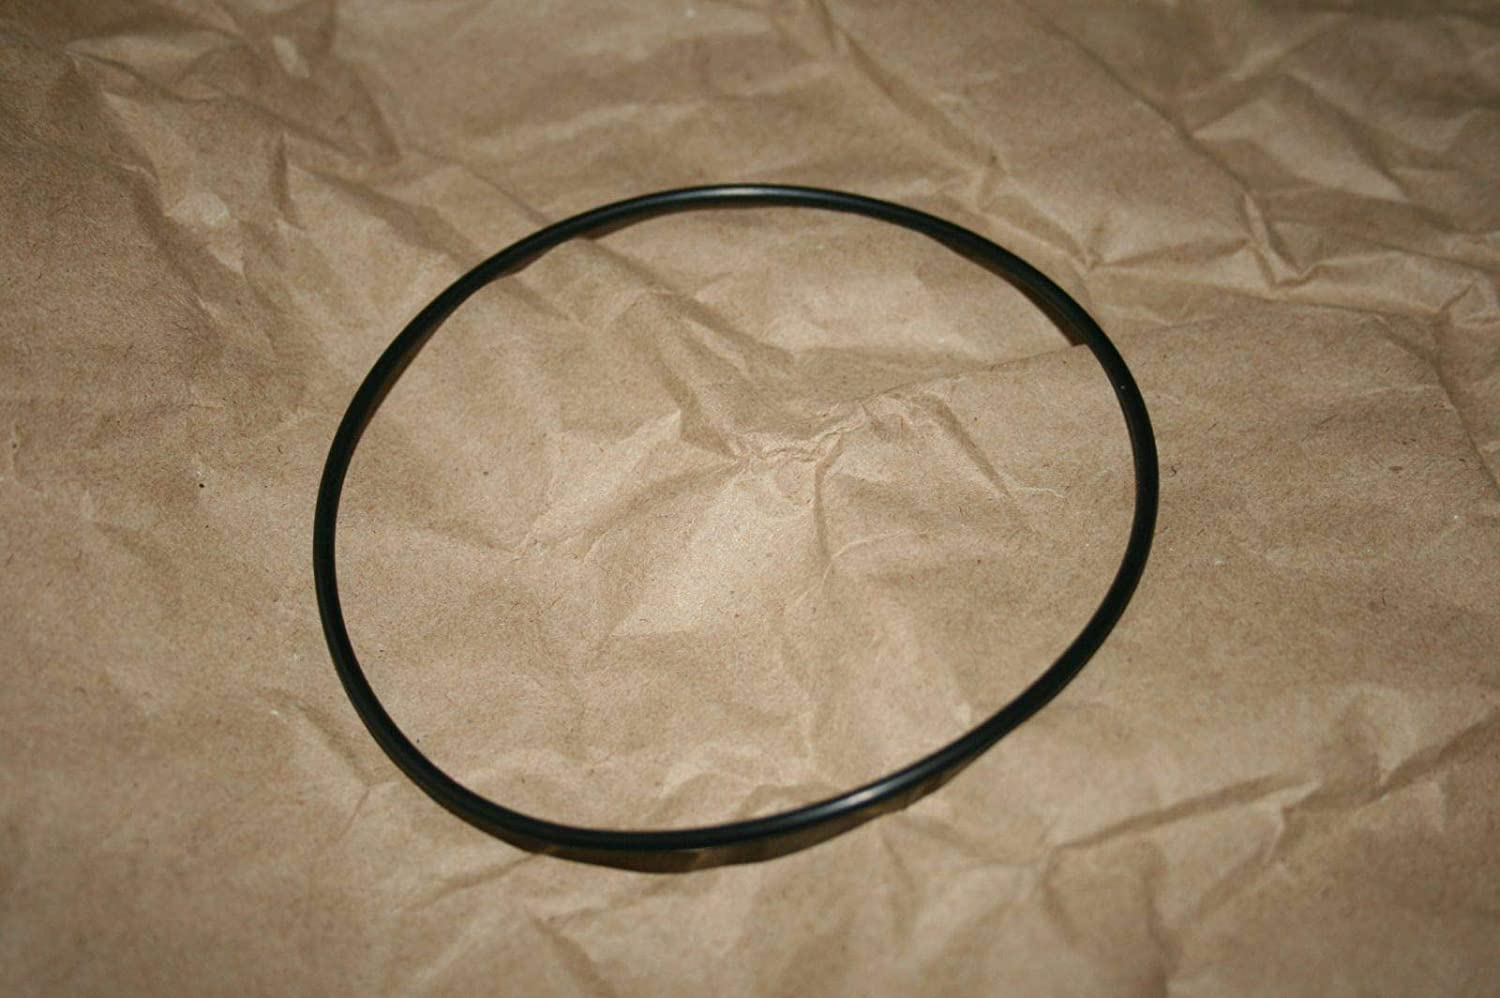 NEW Kansas City Mall Replacement BELT favorite for use with 5 VPI Turntable HRF TNT Motor